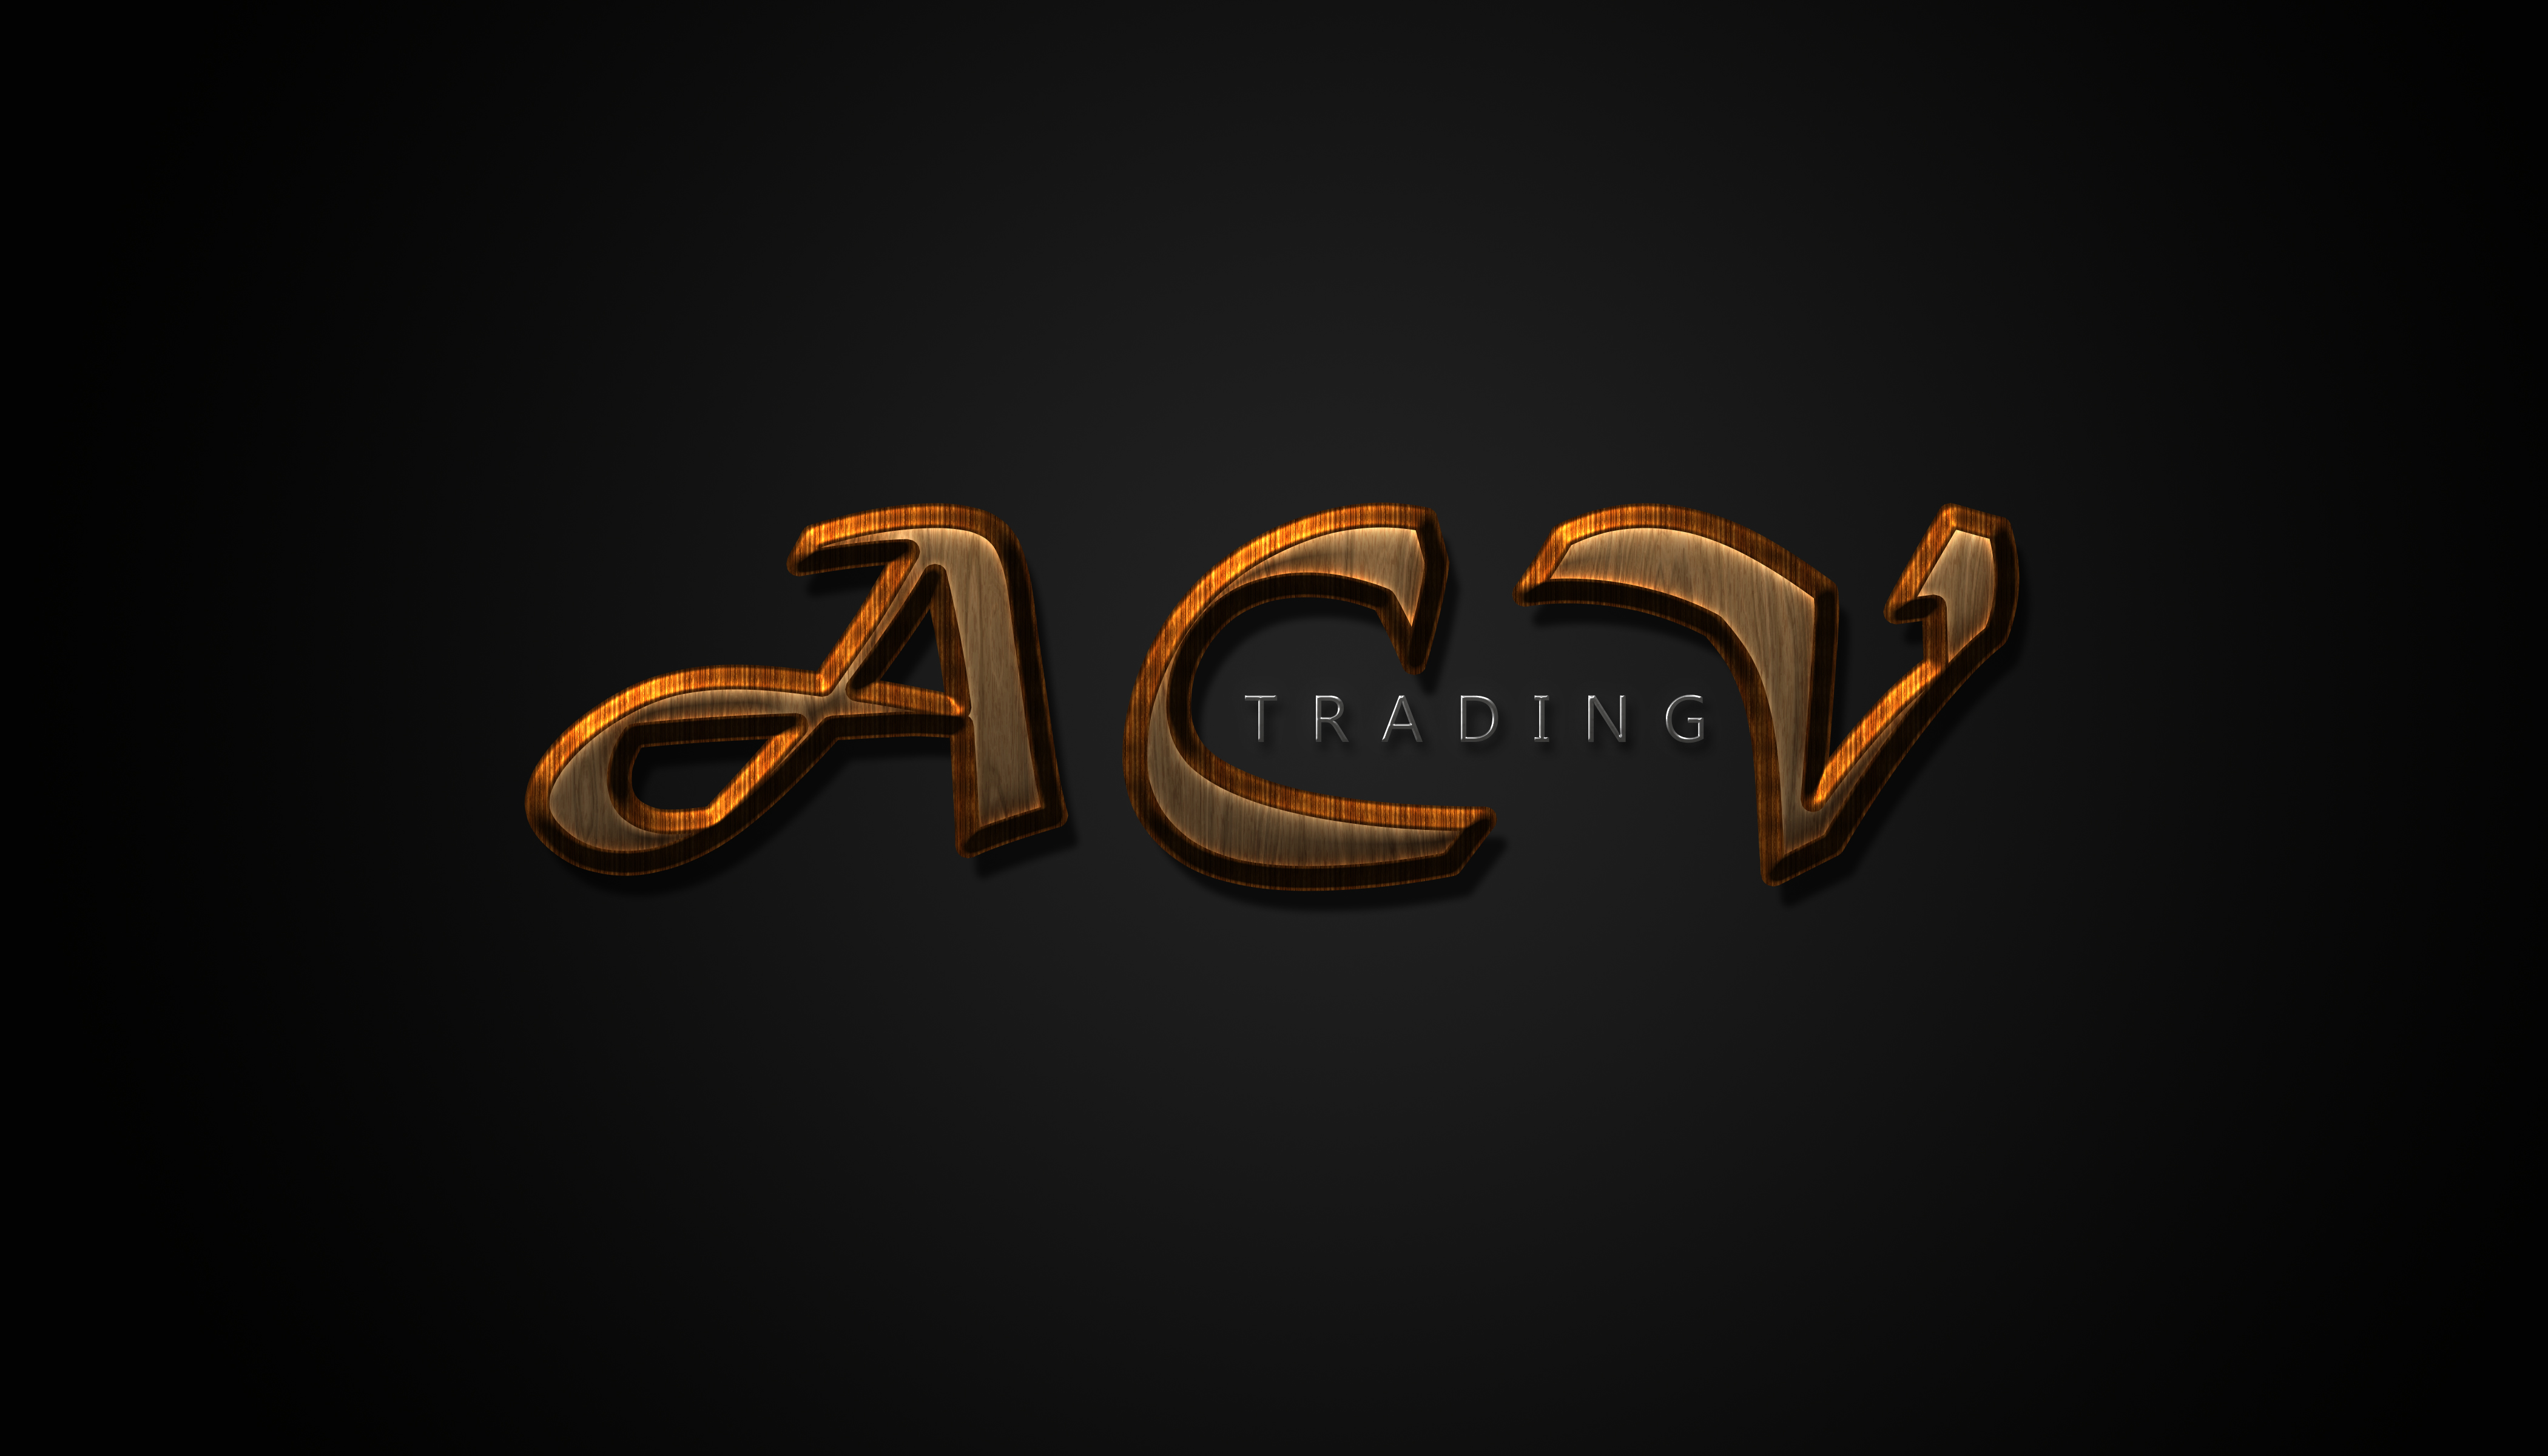 Logo Design by Jomar roy Villalobos - Entry No. 82 in the Logo Design Contest Fun Logo Design for ACV Trading.